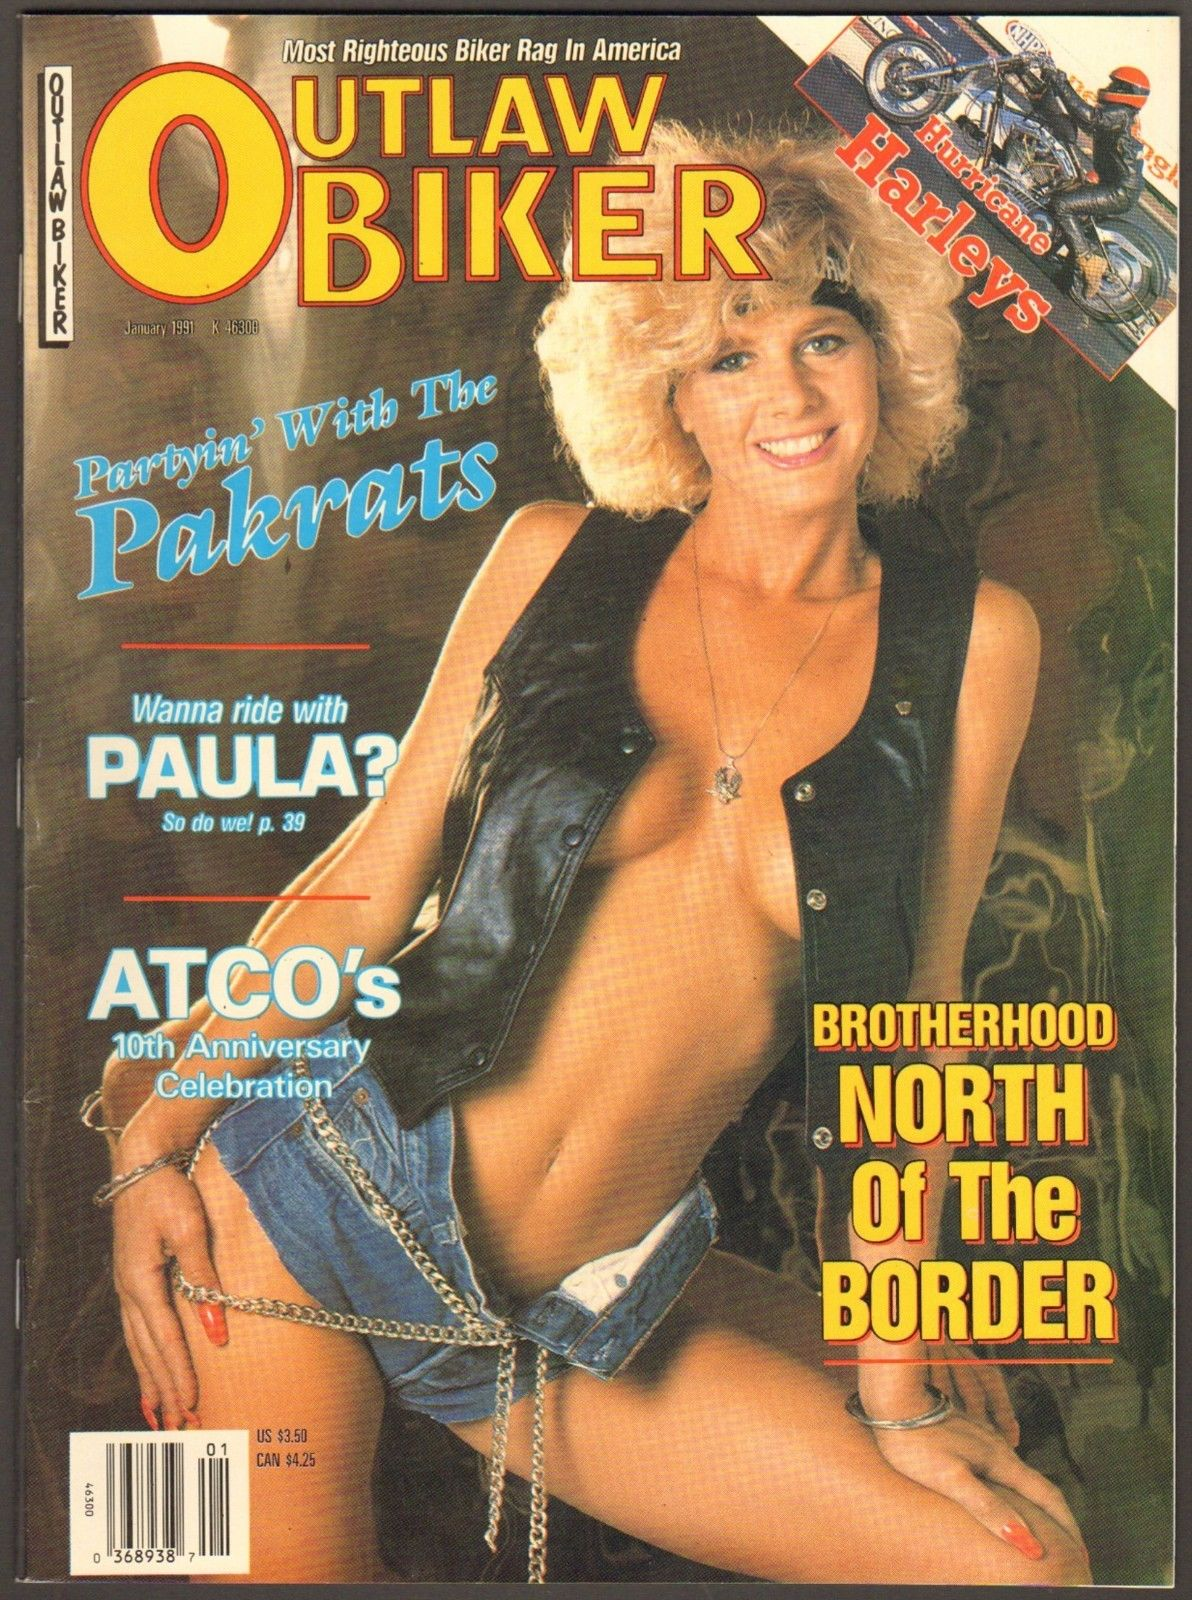 outlaw biker magazine cover